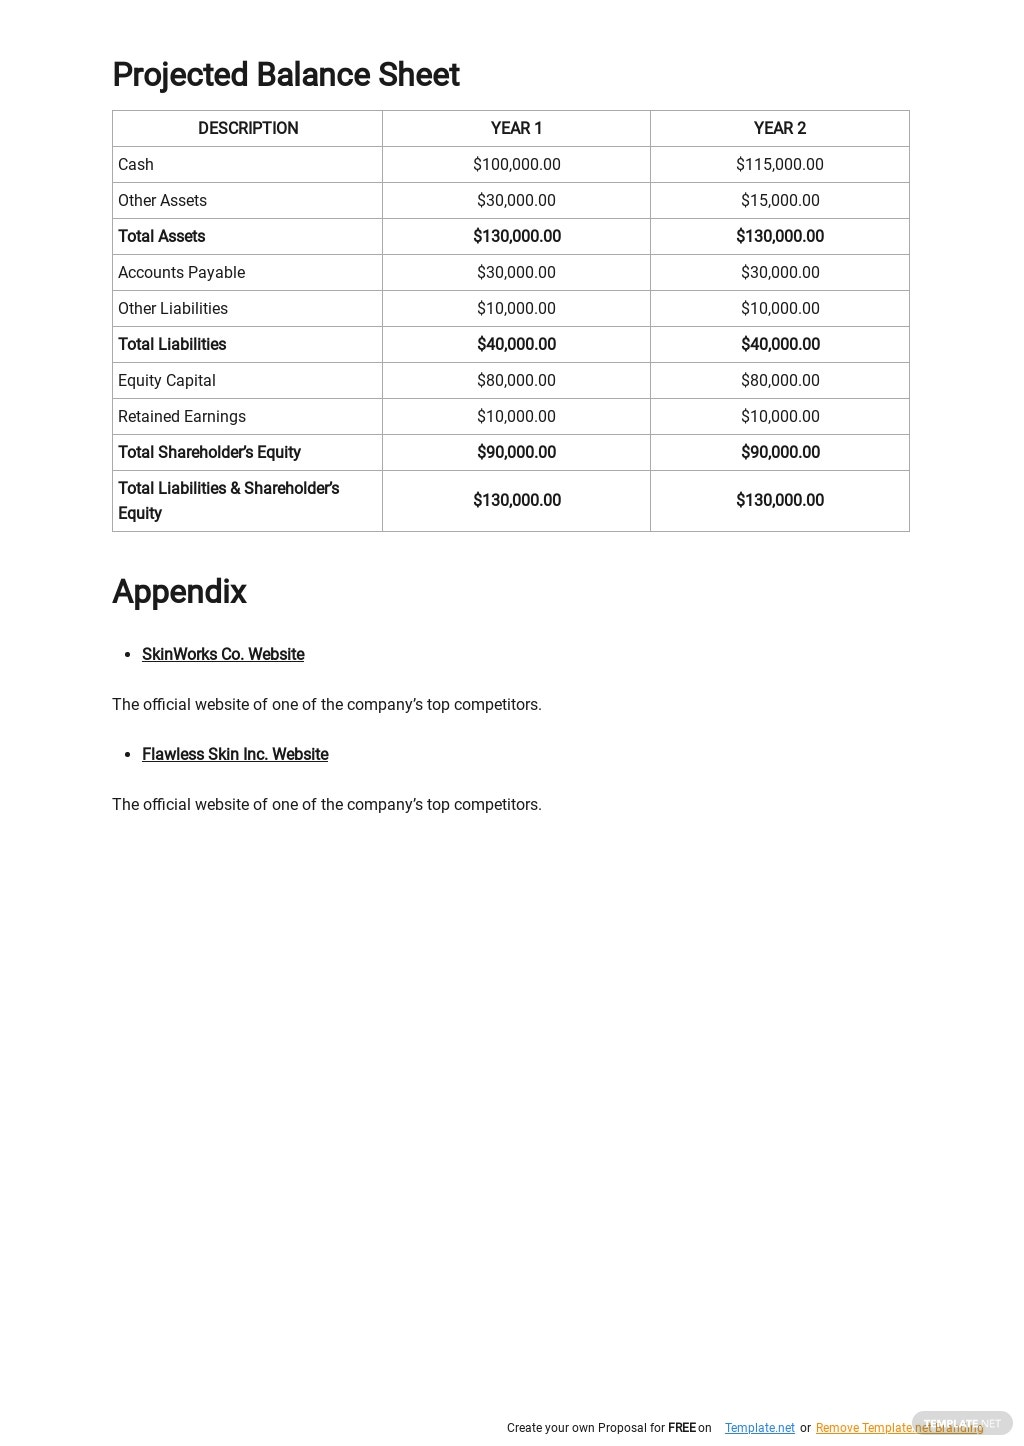 Product Launch Business Plan Template 4.jpe